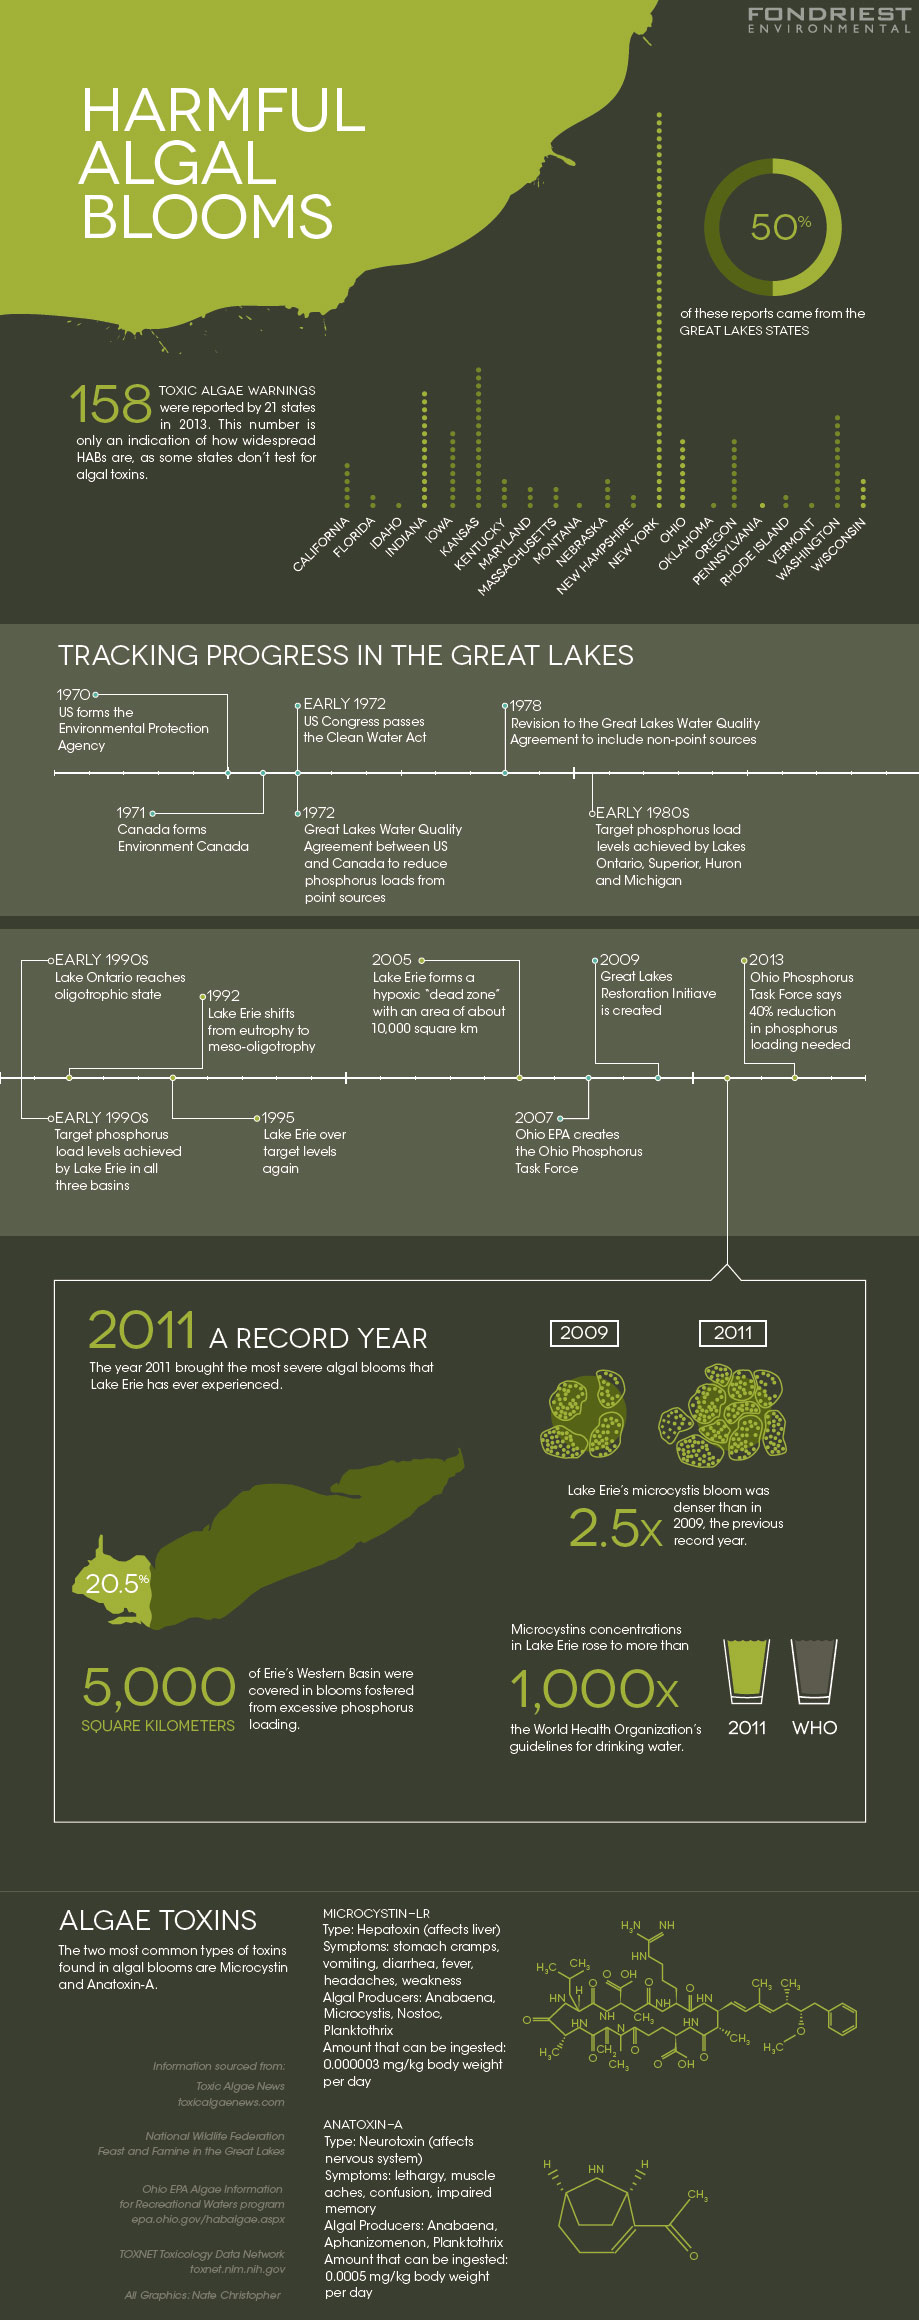 Algal blooms infographic (Credit: Nate Christopher)